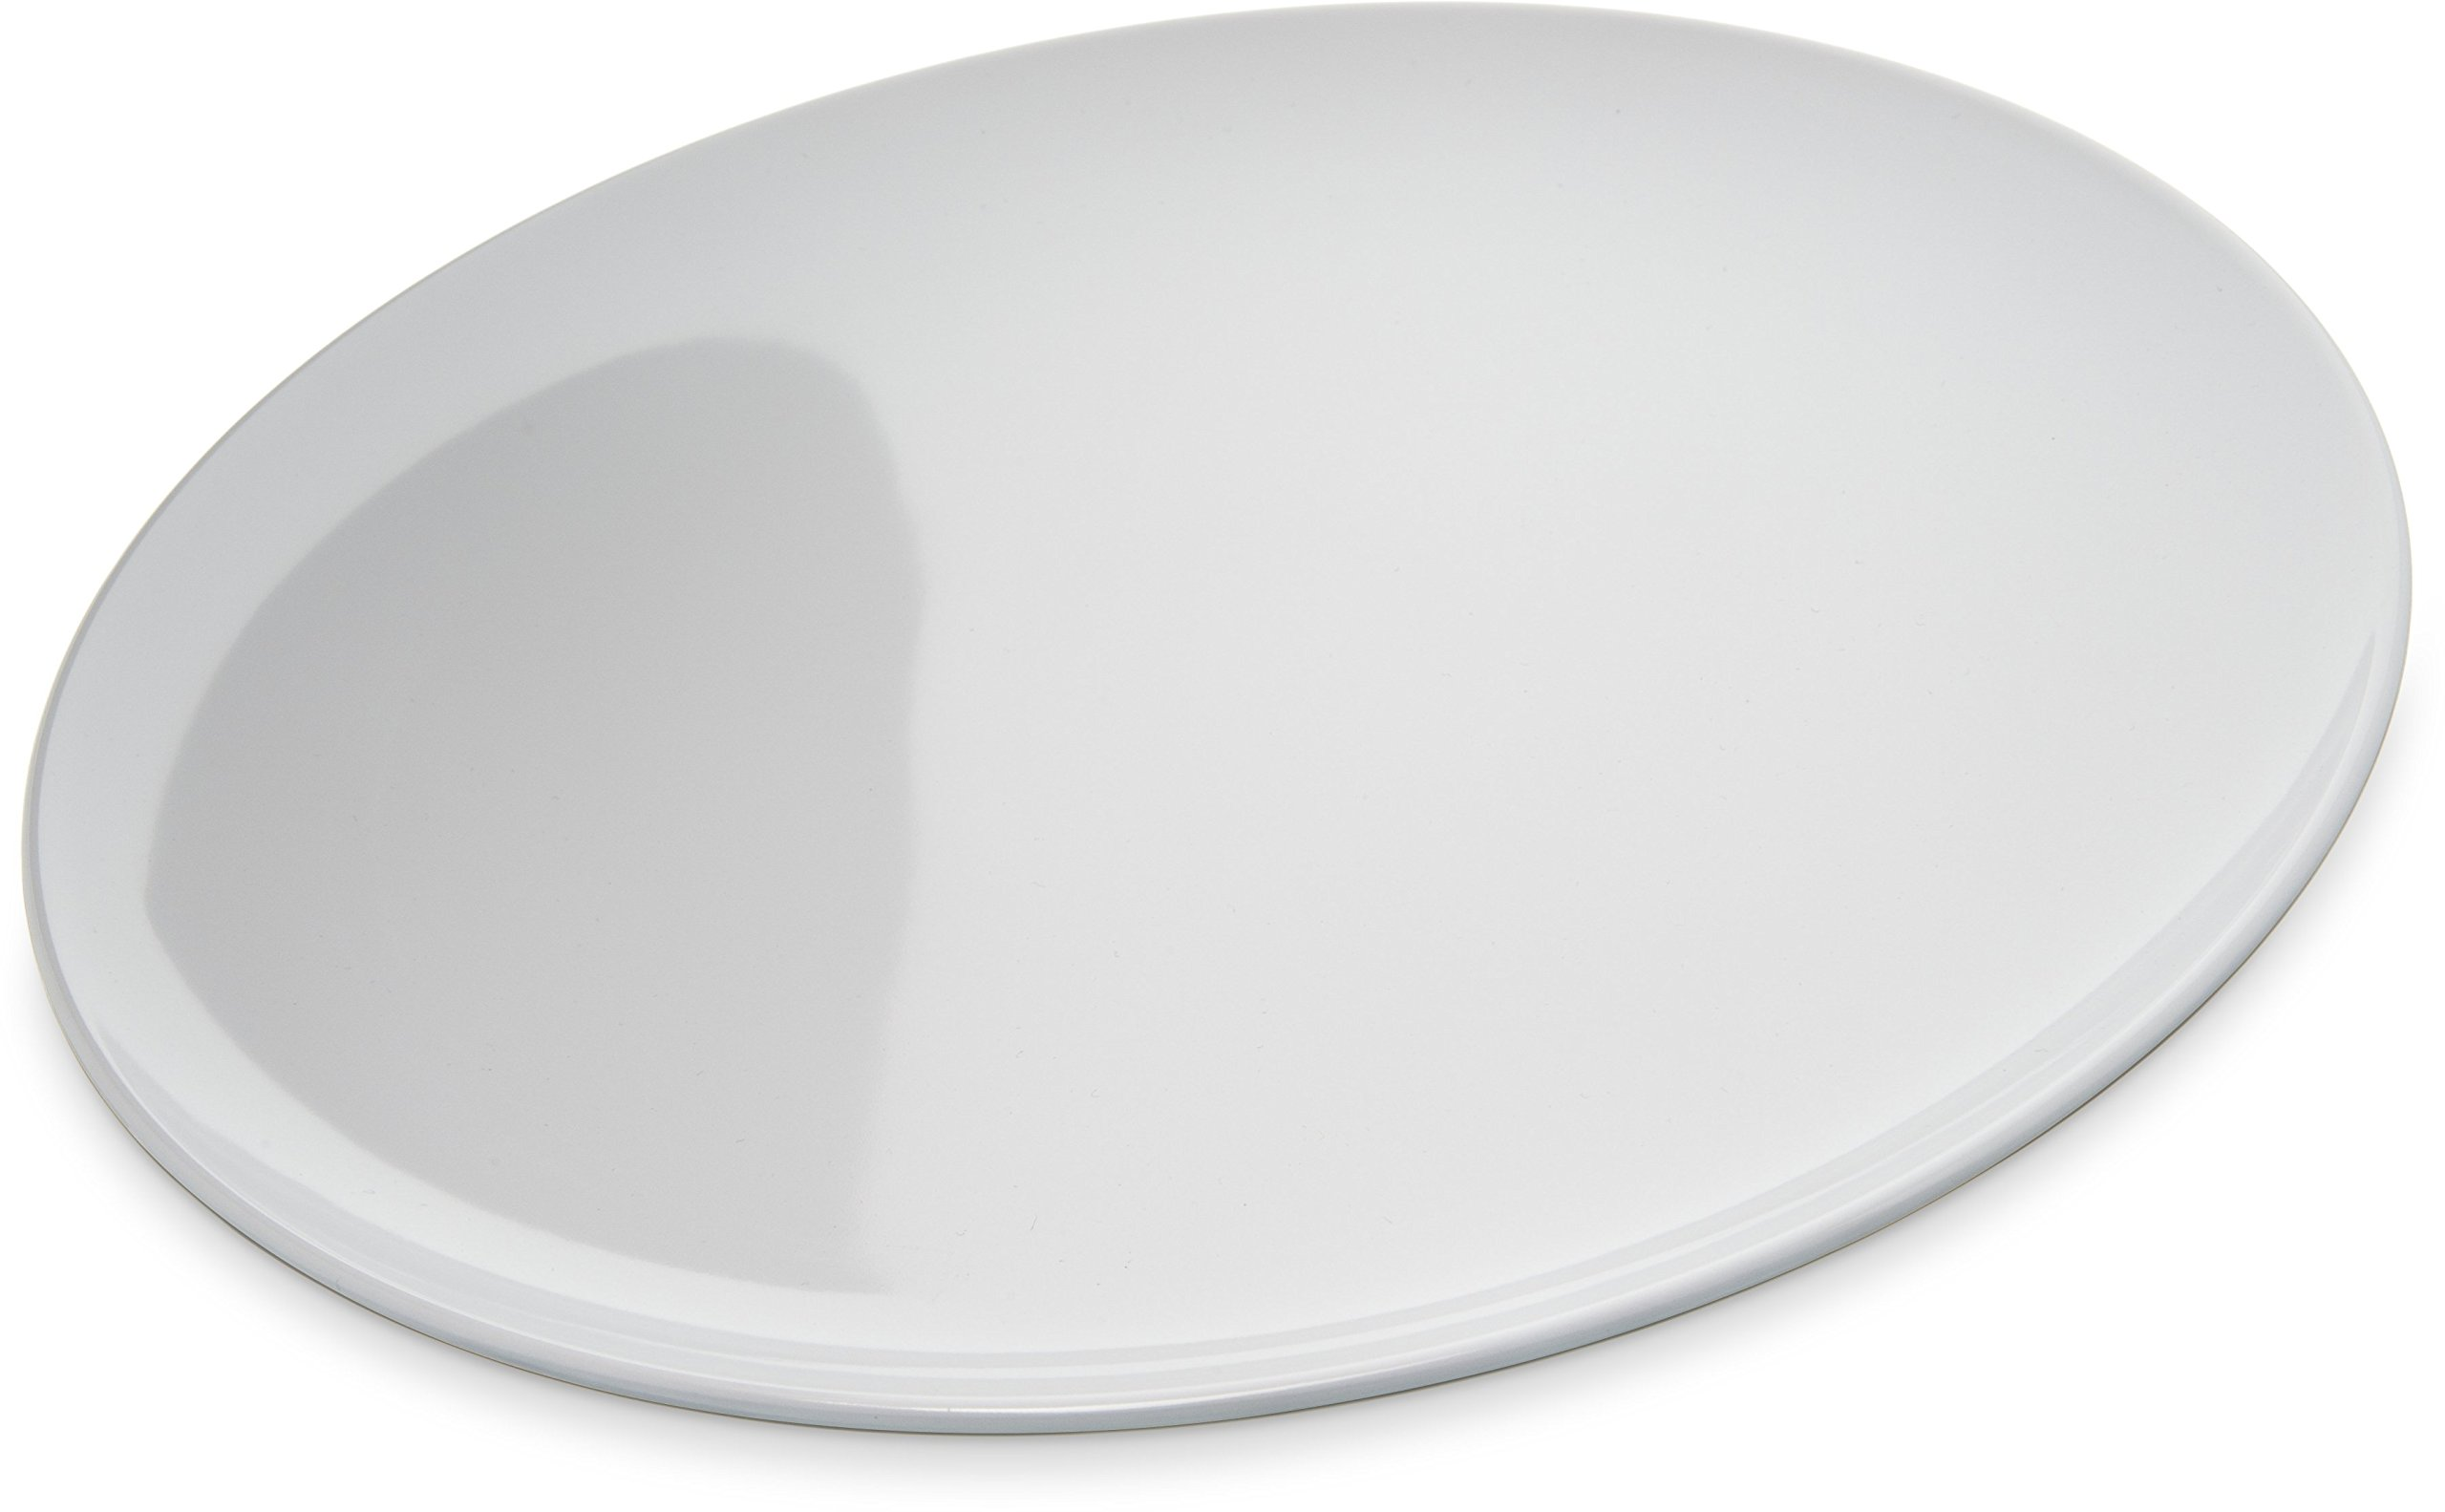 Carlisle 4380002 Epicure Melamine Buffet / Pizza Plate, 12'', White (Set of 12) by Carlisle